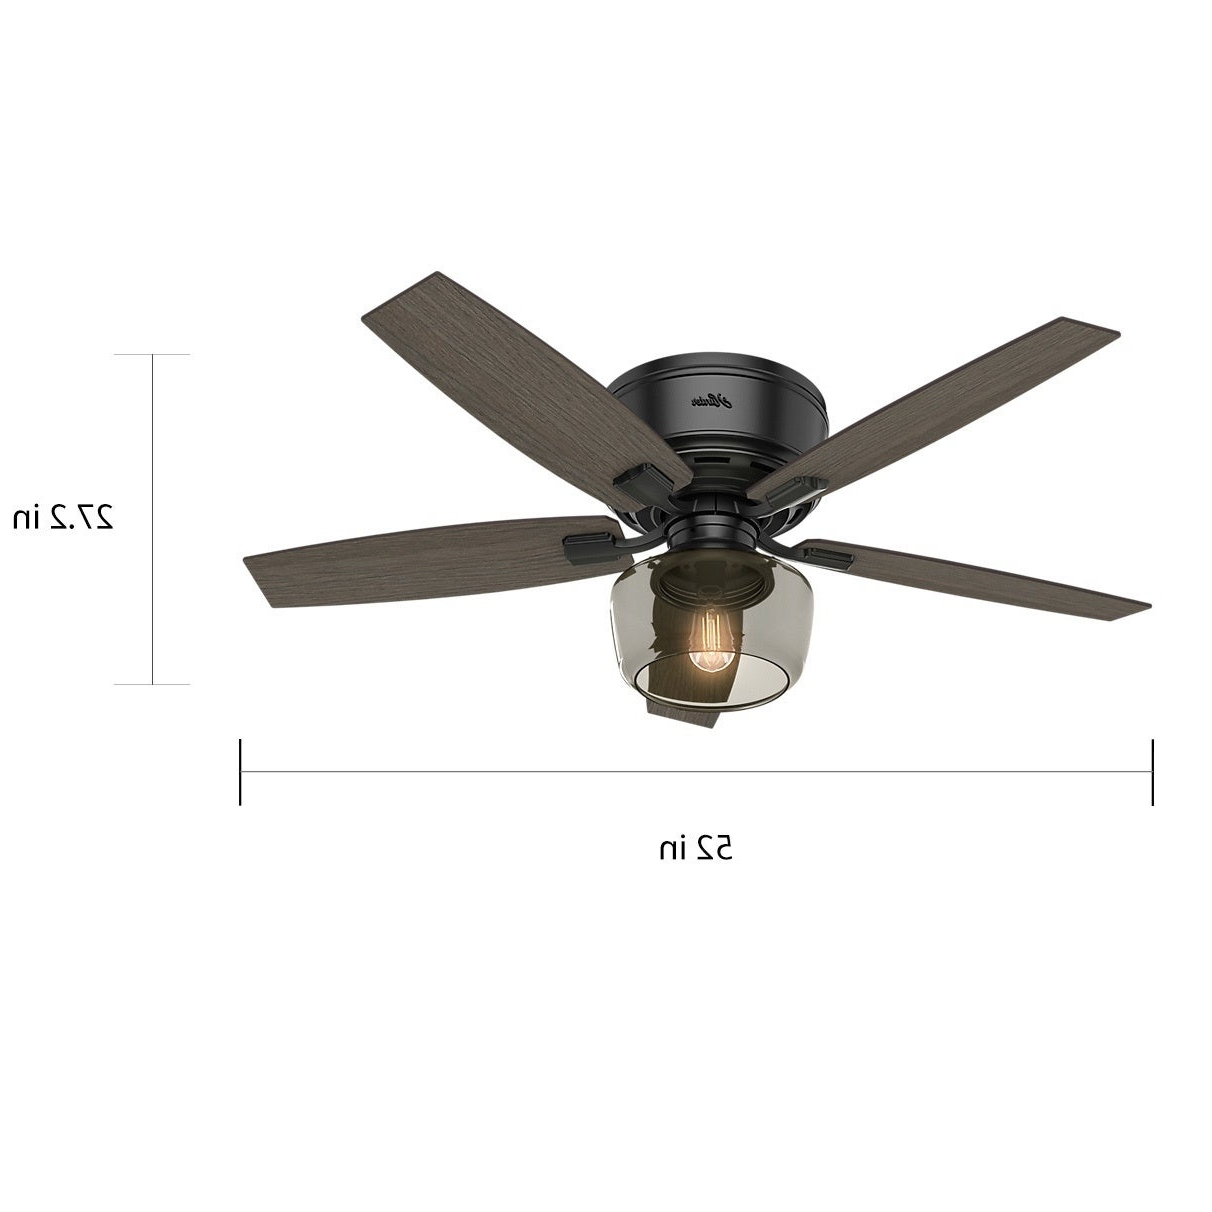 "Hunter Fan 52"" Bennett Matte Black W / 5 Gry Wlnt / Brnt Wlnt Rev Blds Regarding Newest Bennett 5 Blade Led Ceiling Fans With Remote (View 10 of 20)"